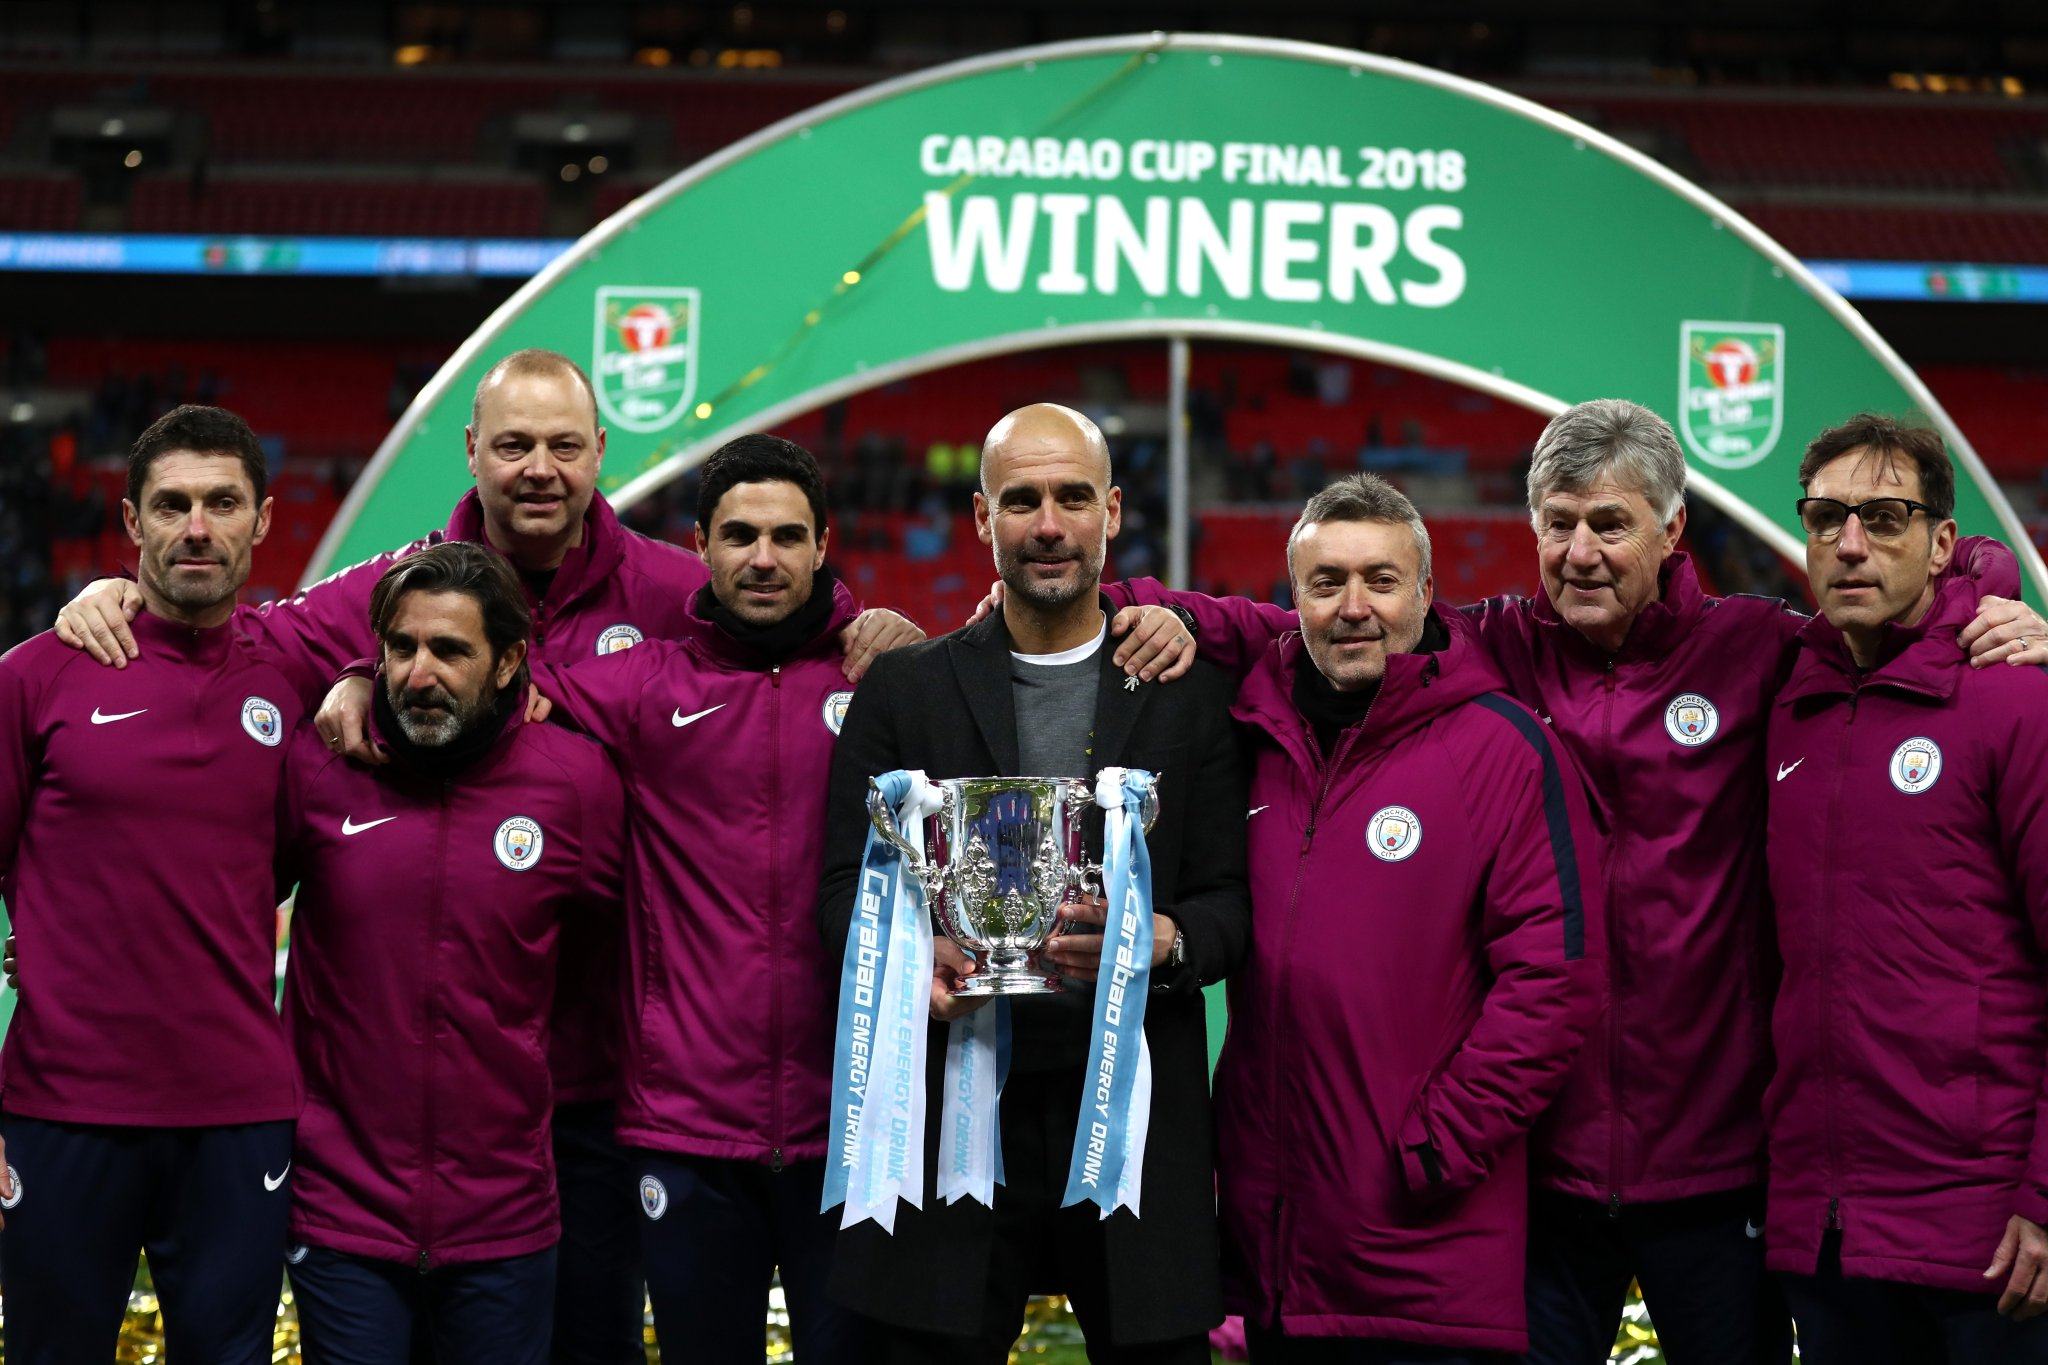 Guardiola Guns For EPL, Champions League Titles After Carabao Cup Win